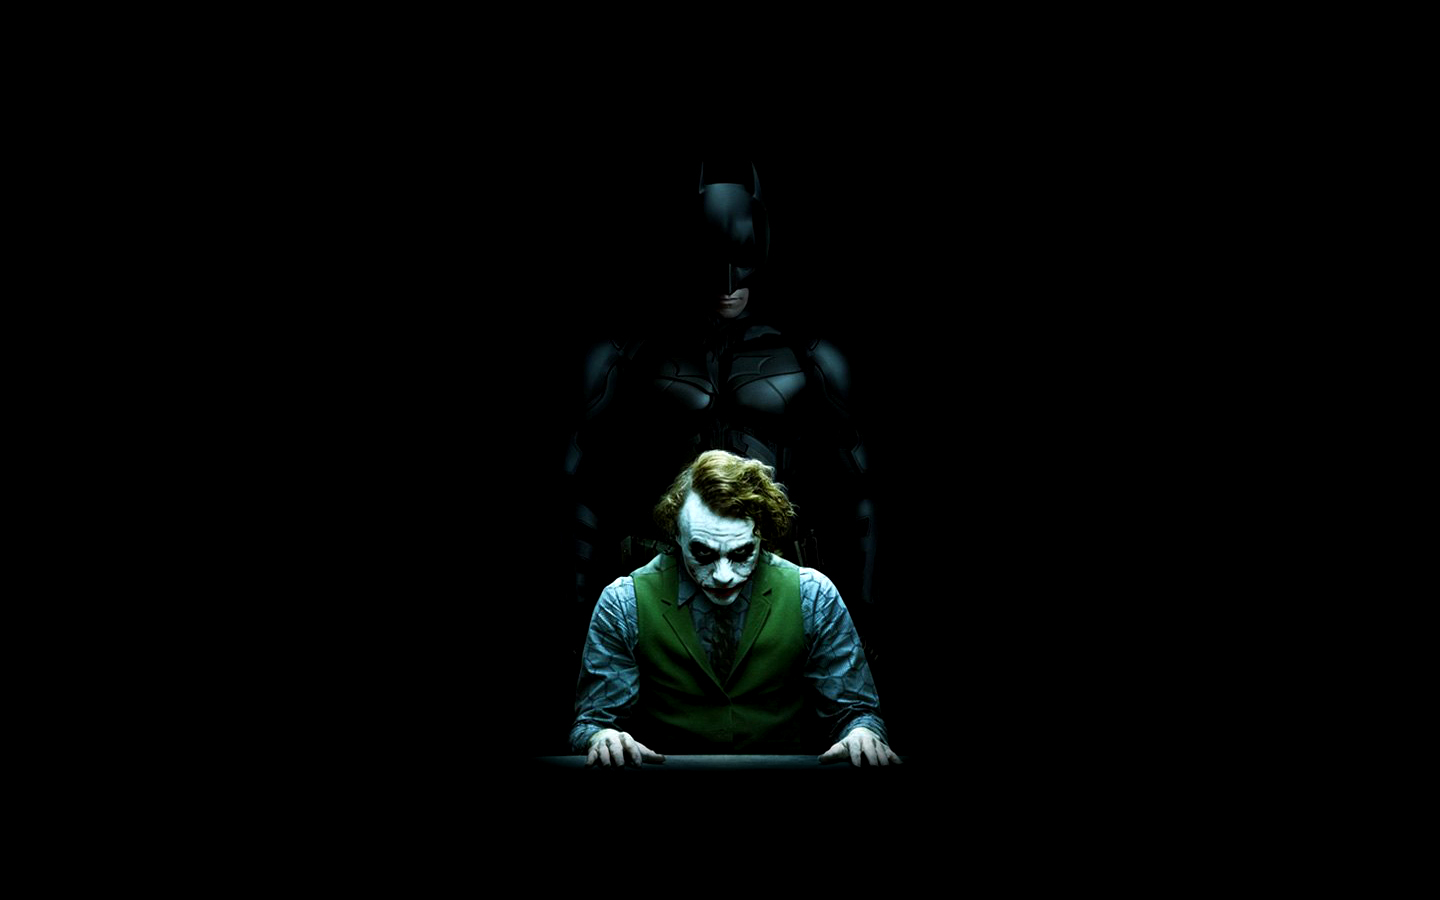 Joker Card Dark Knight Wallpaper